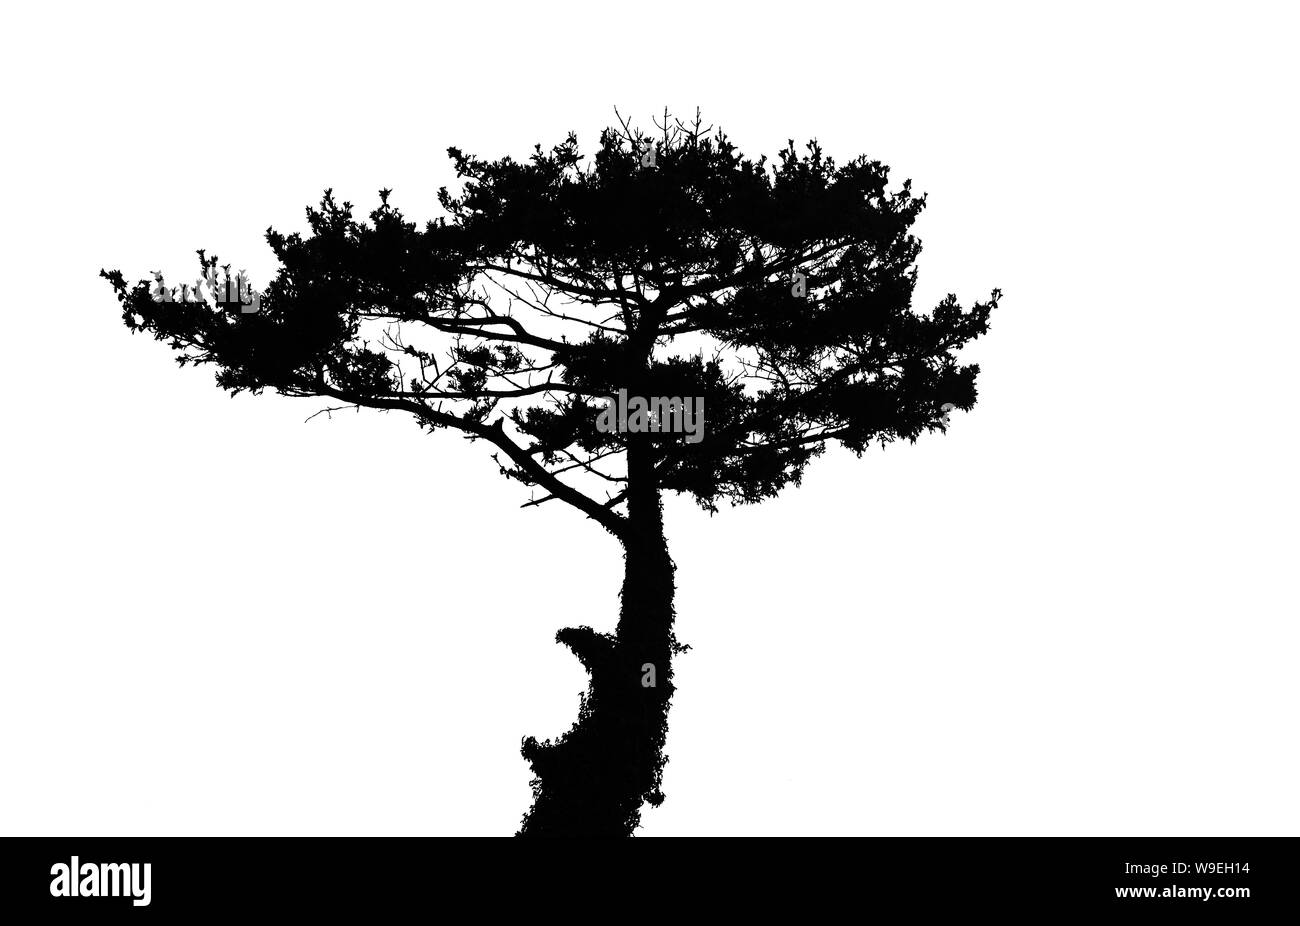 Black Pine Tree Silhouette Isolated On White Background Tree Silhouette Stock Photo Alamy